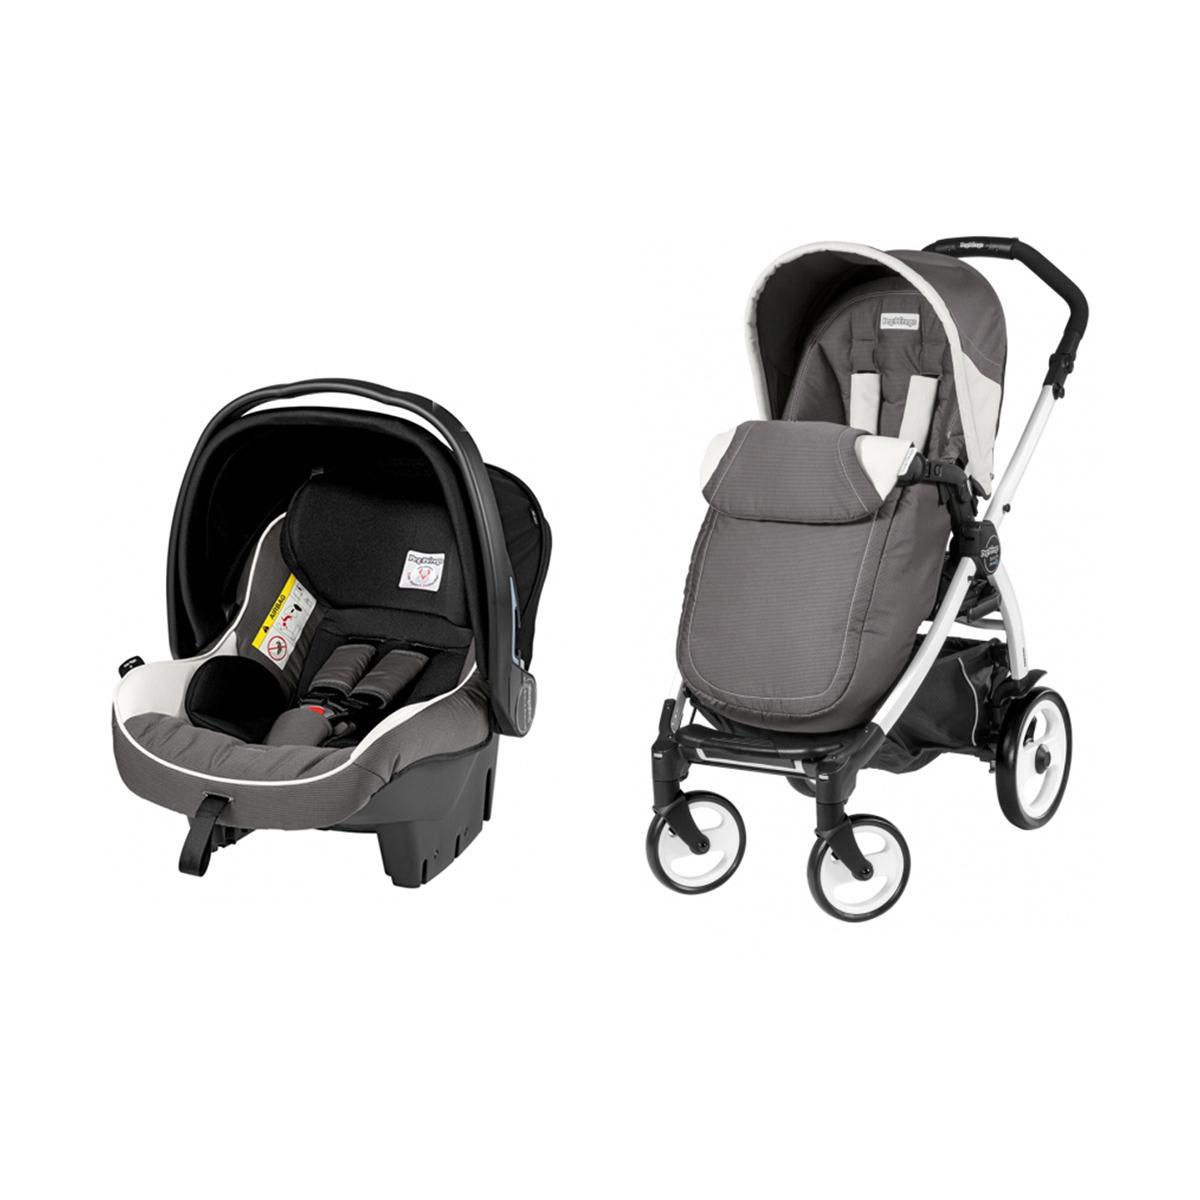 Peg Perego Book 51 Completo Yorum Peg Perego 651651 Picca Peg Perego Book 51 Pop Up Completo Travel Sistem Bebek Arabası Piccadilly